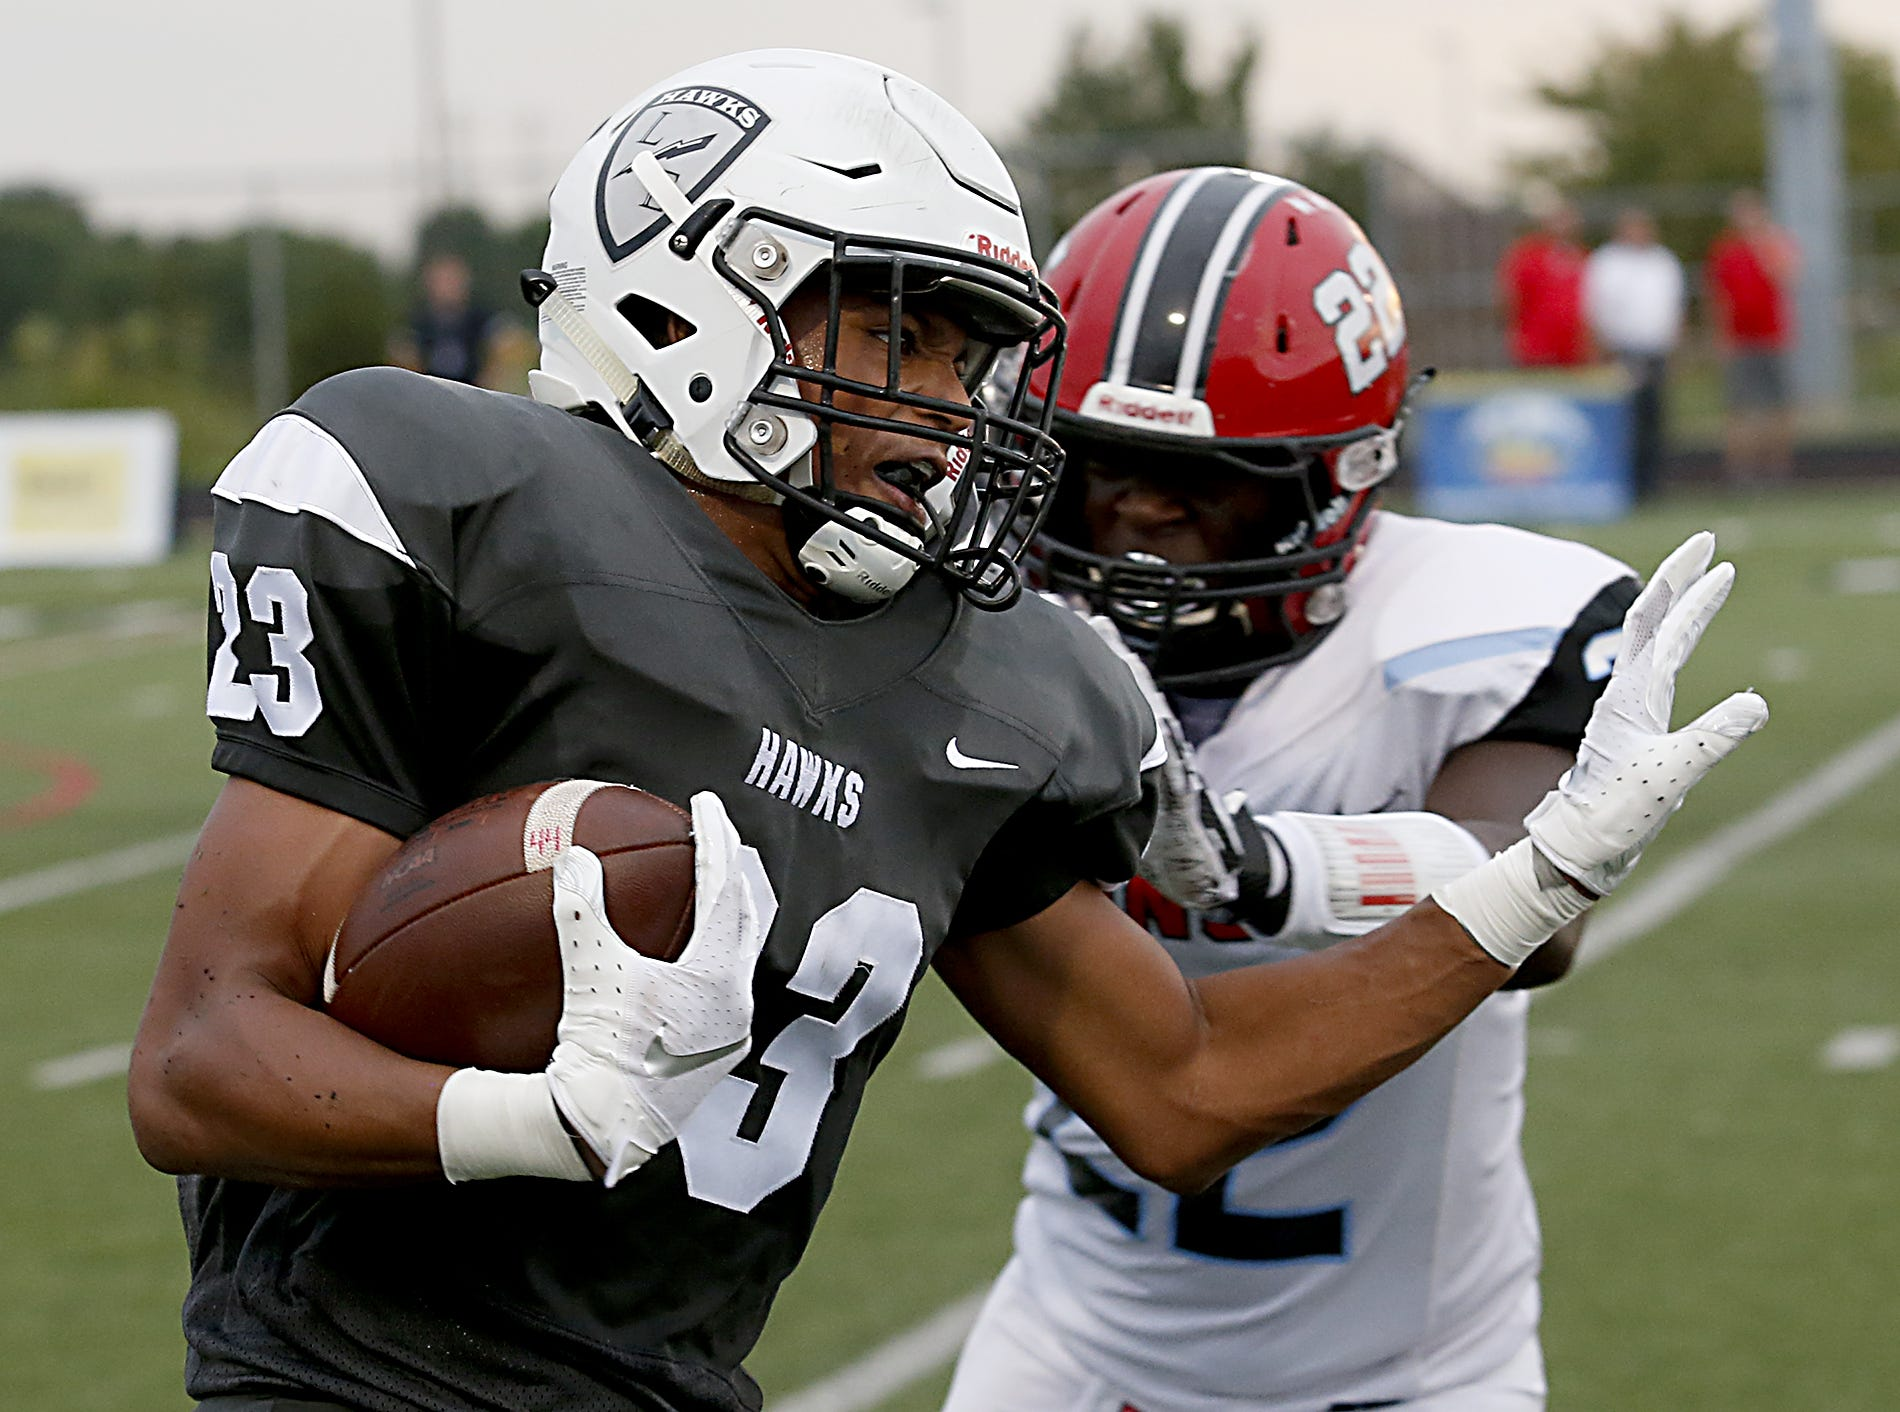 Lakota East ball carrier Avi McGary breaks the tackle of Kings would-be tackler Devin Squires during their Skyline Chili Crosstown Showdown game at Lakota East Friday, August 31, 2018.